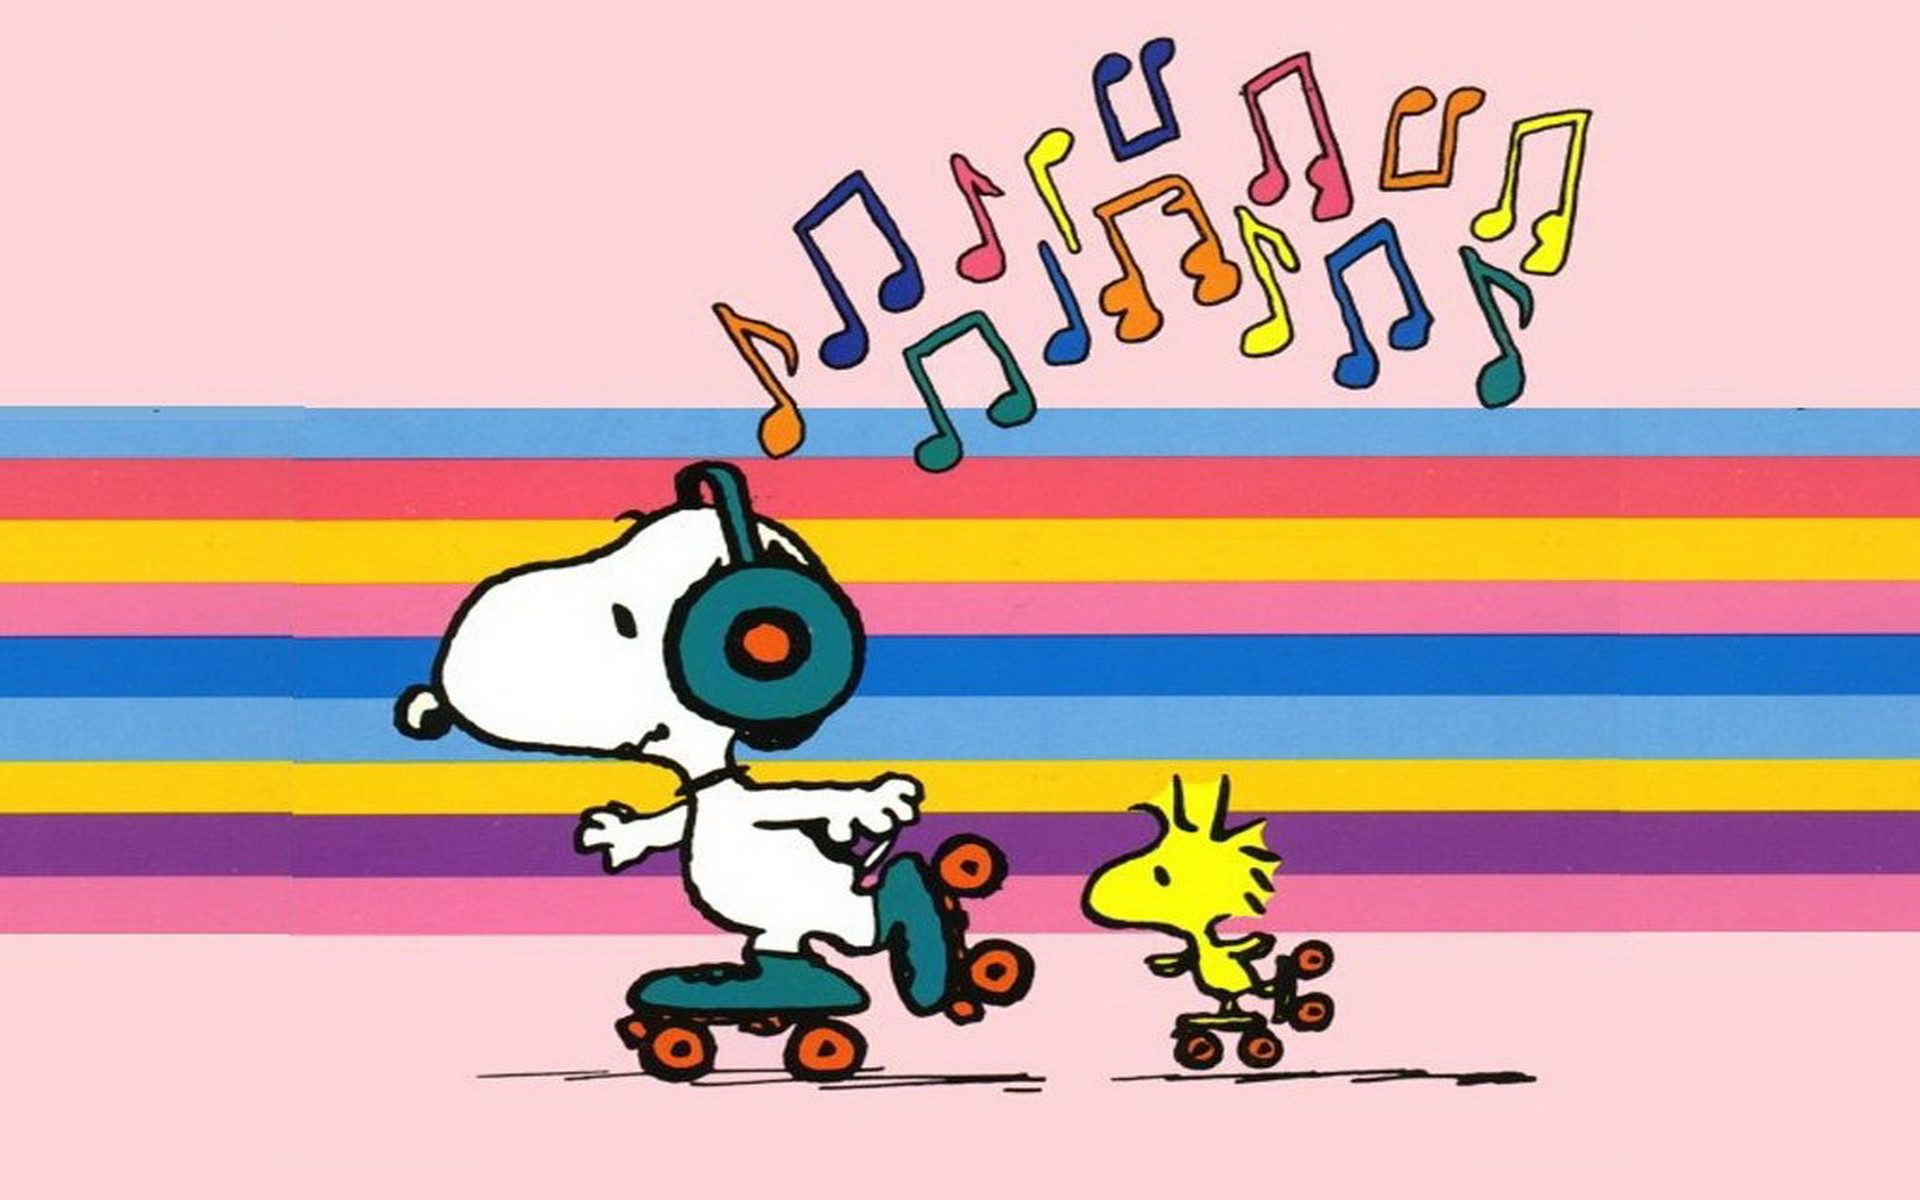 10 best ideas about Snoopy/Peanuts Backgrounds on Pinterest | The peanuts,  Search and Snoopy sleeping